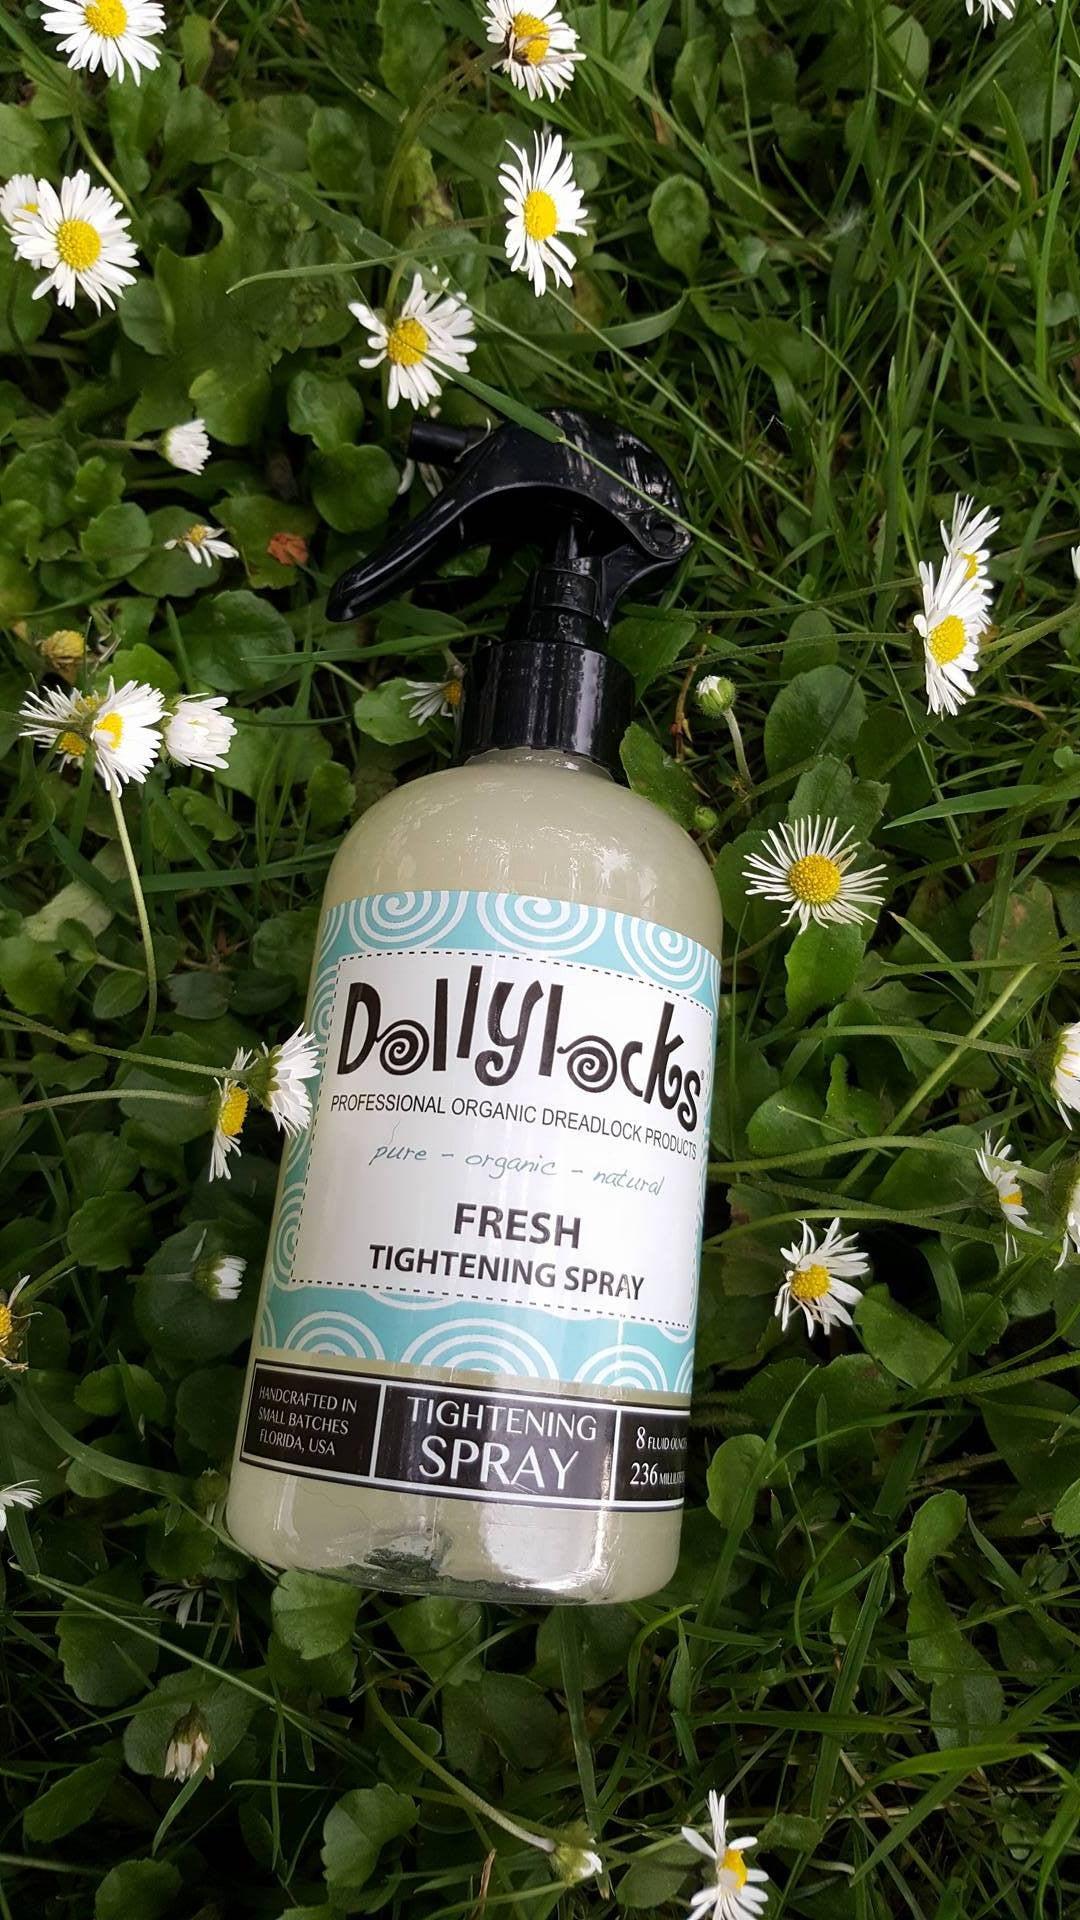 Dollylocks Tightening Spray - Fresh 8oz